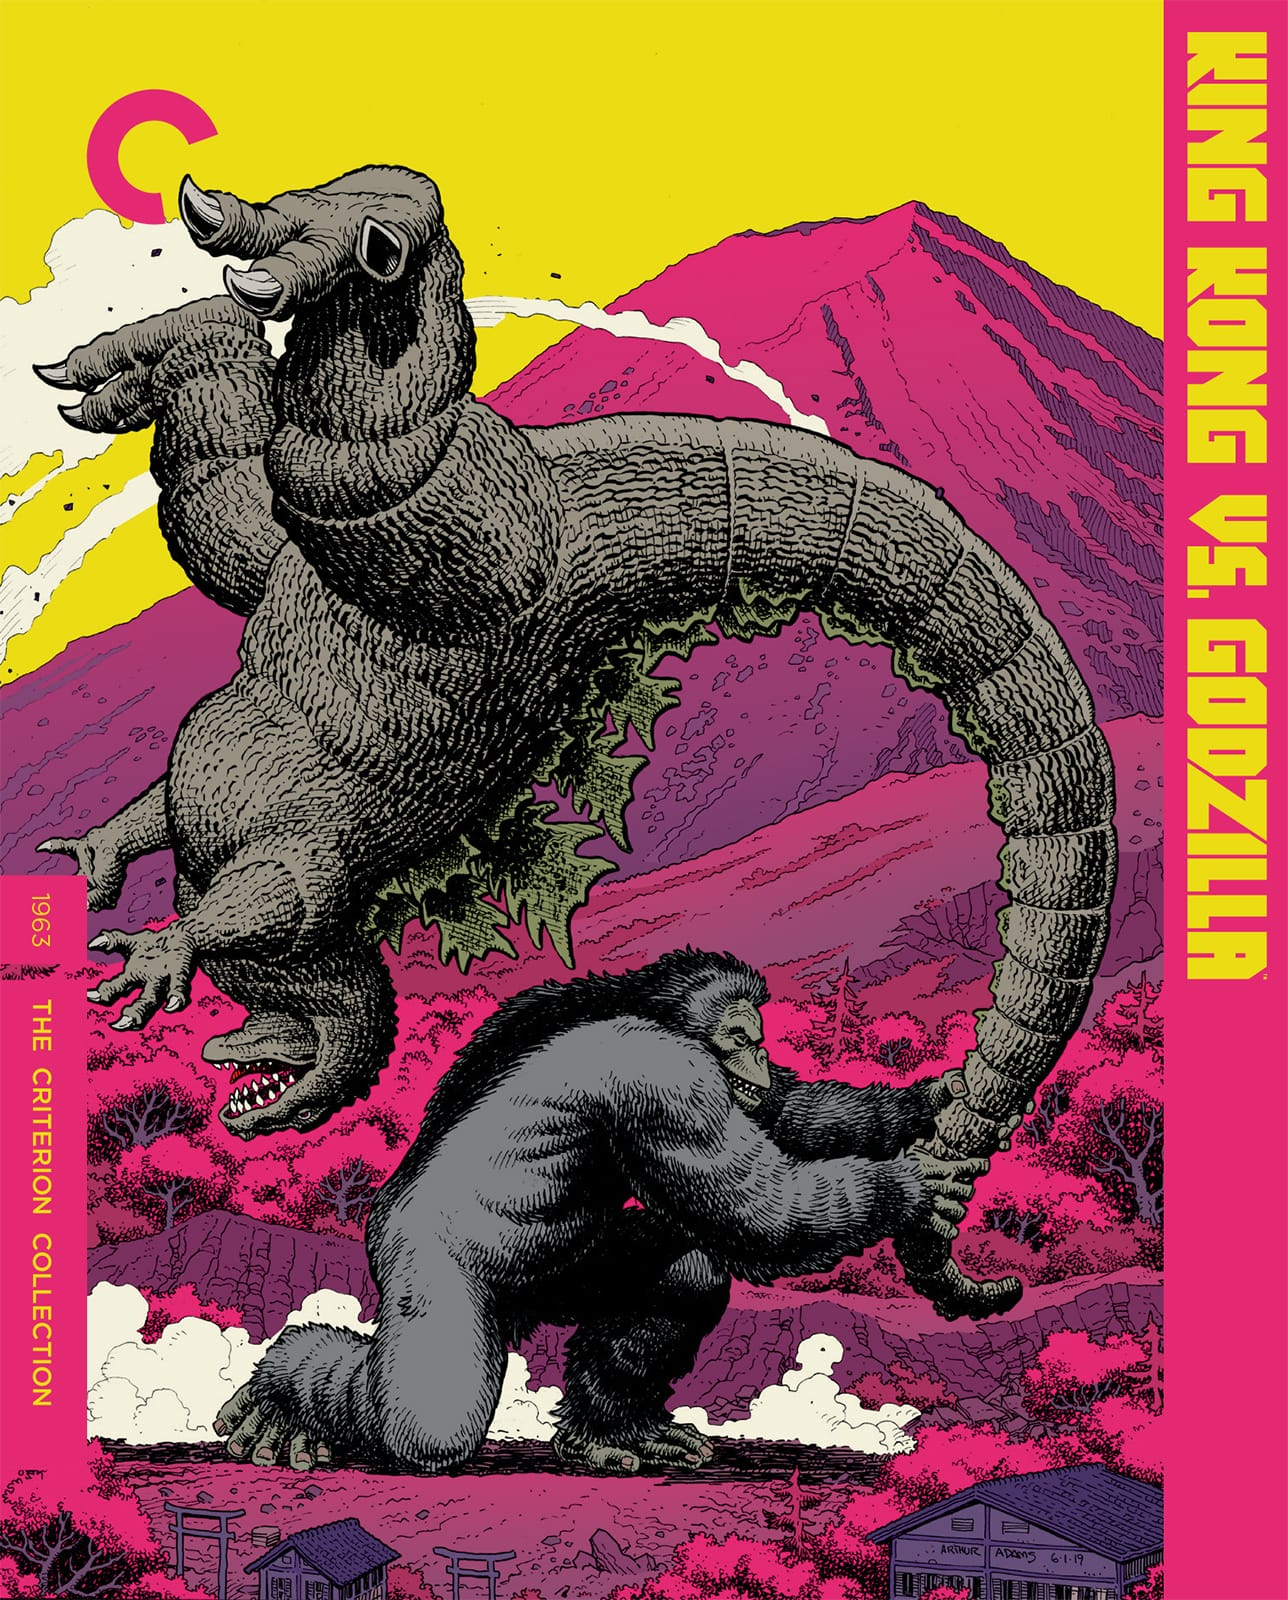 King Kong vs. Godzilla (1963) | The Criterion Collection